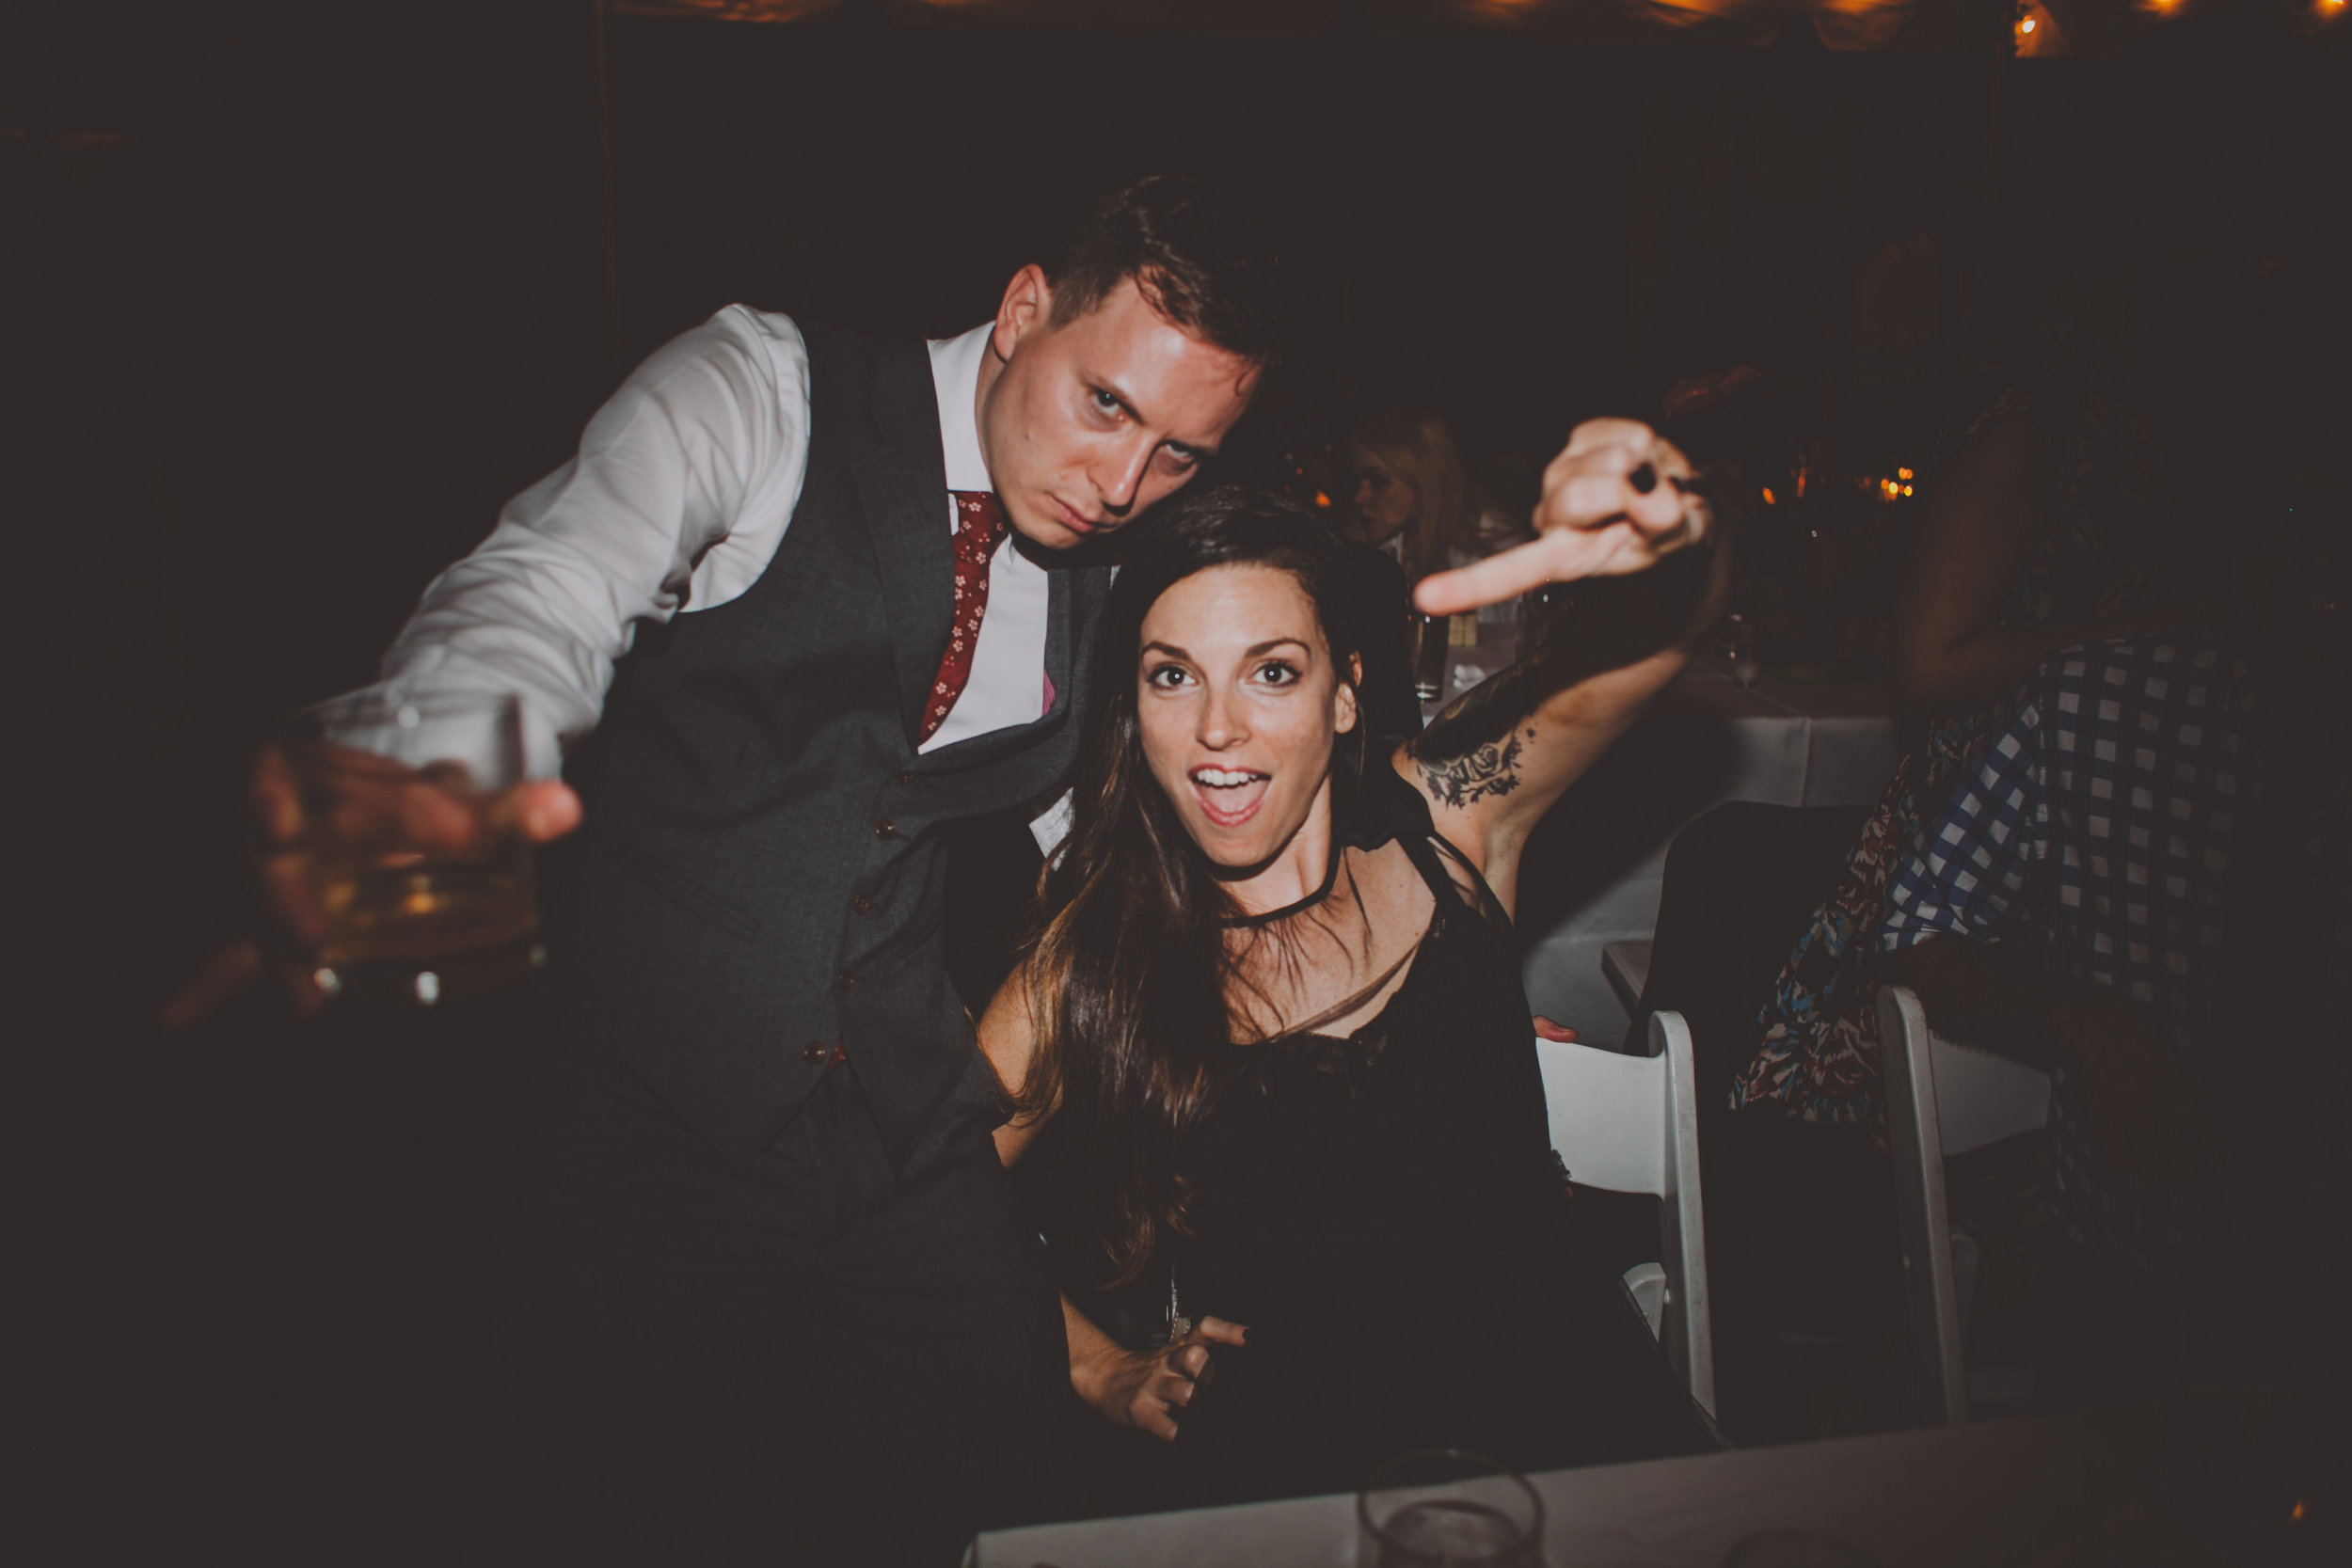 Robertas_Bushwick_Wedding_Tiki_Photography353.JPG